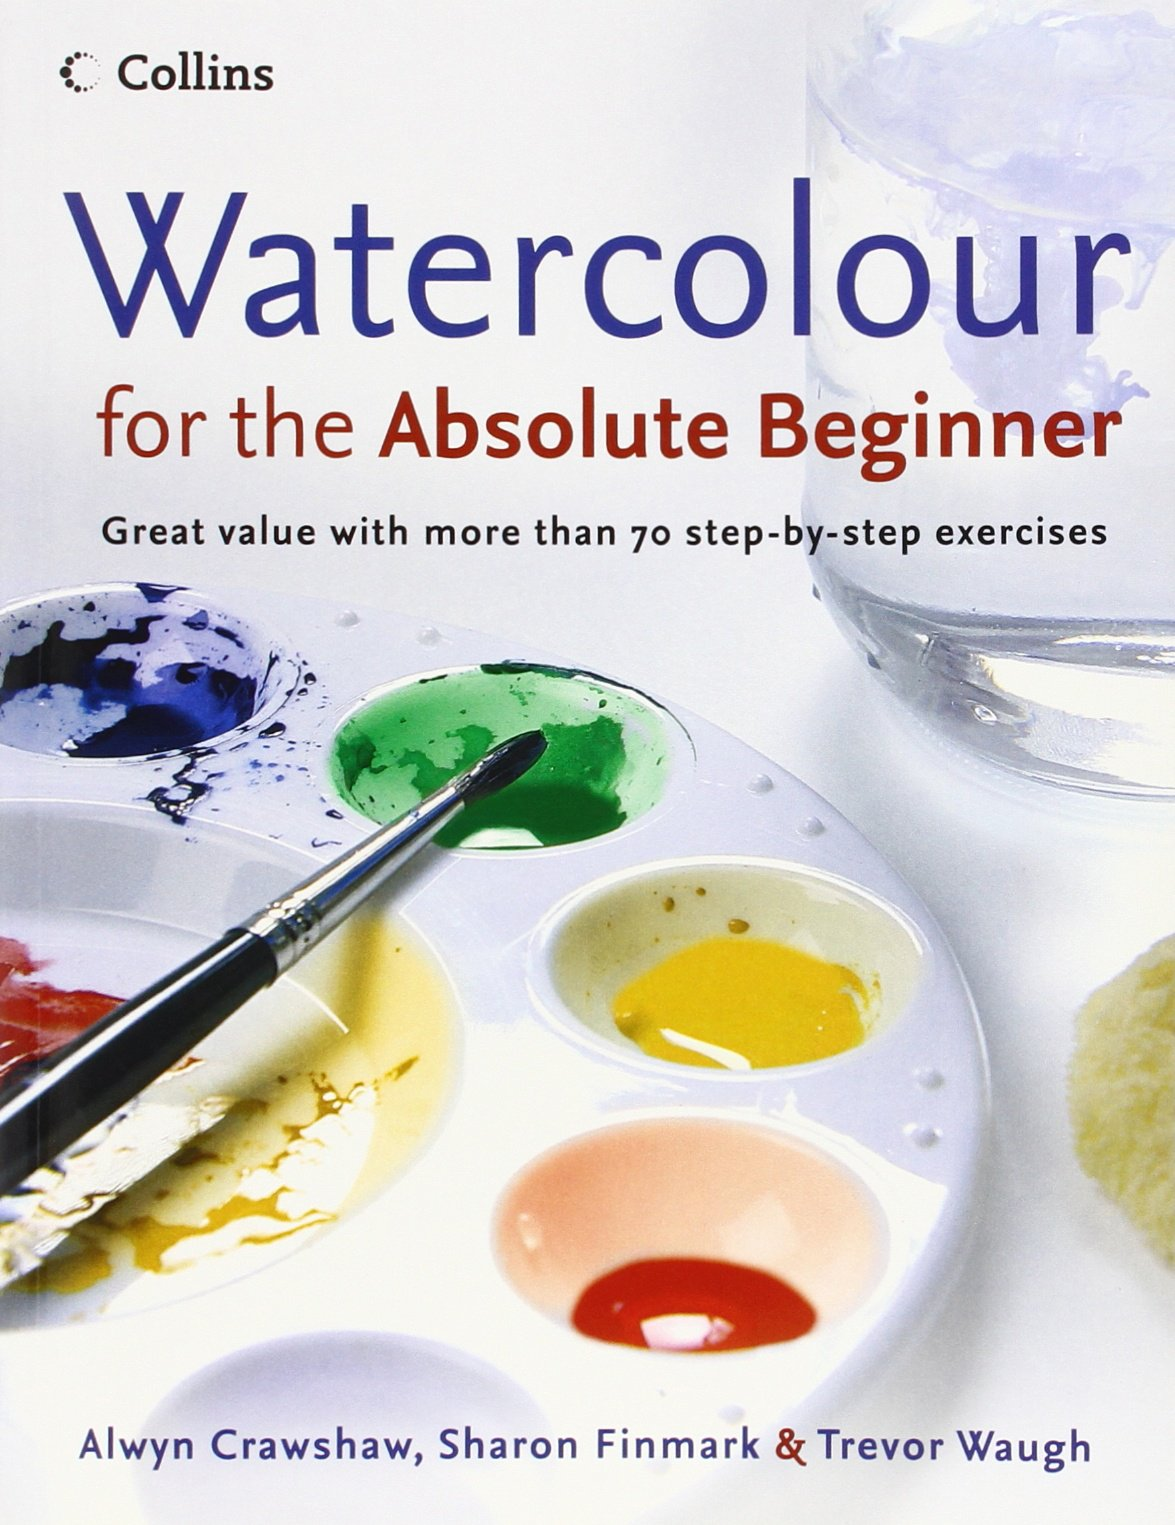 Watercolor books for beginners - Watercolour For The Absolute Beginner Alwyn Crawshaw Sharon Finmark Trevor Waugh 8601300017211 Amazon Com Books